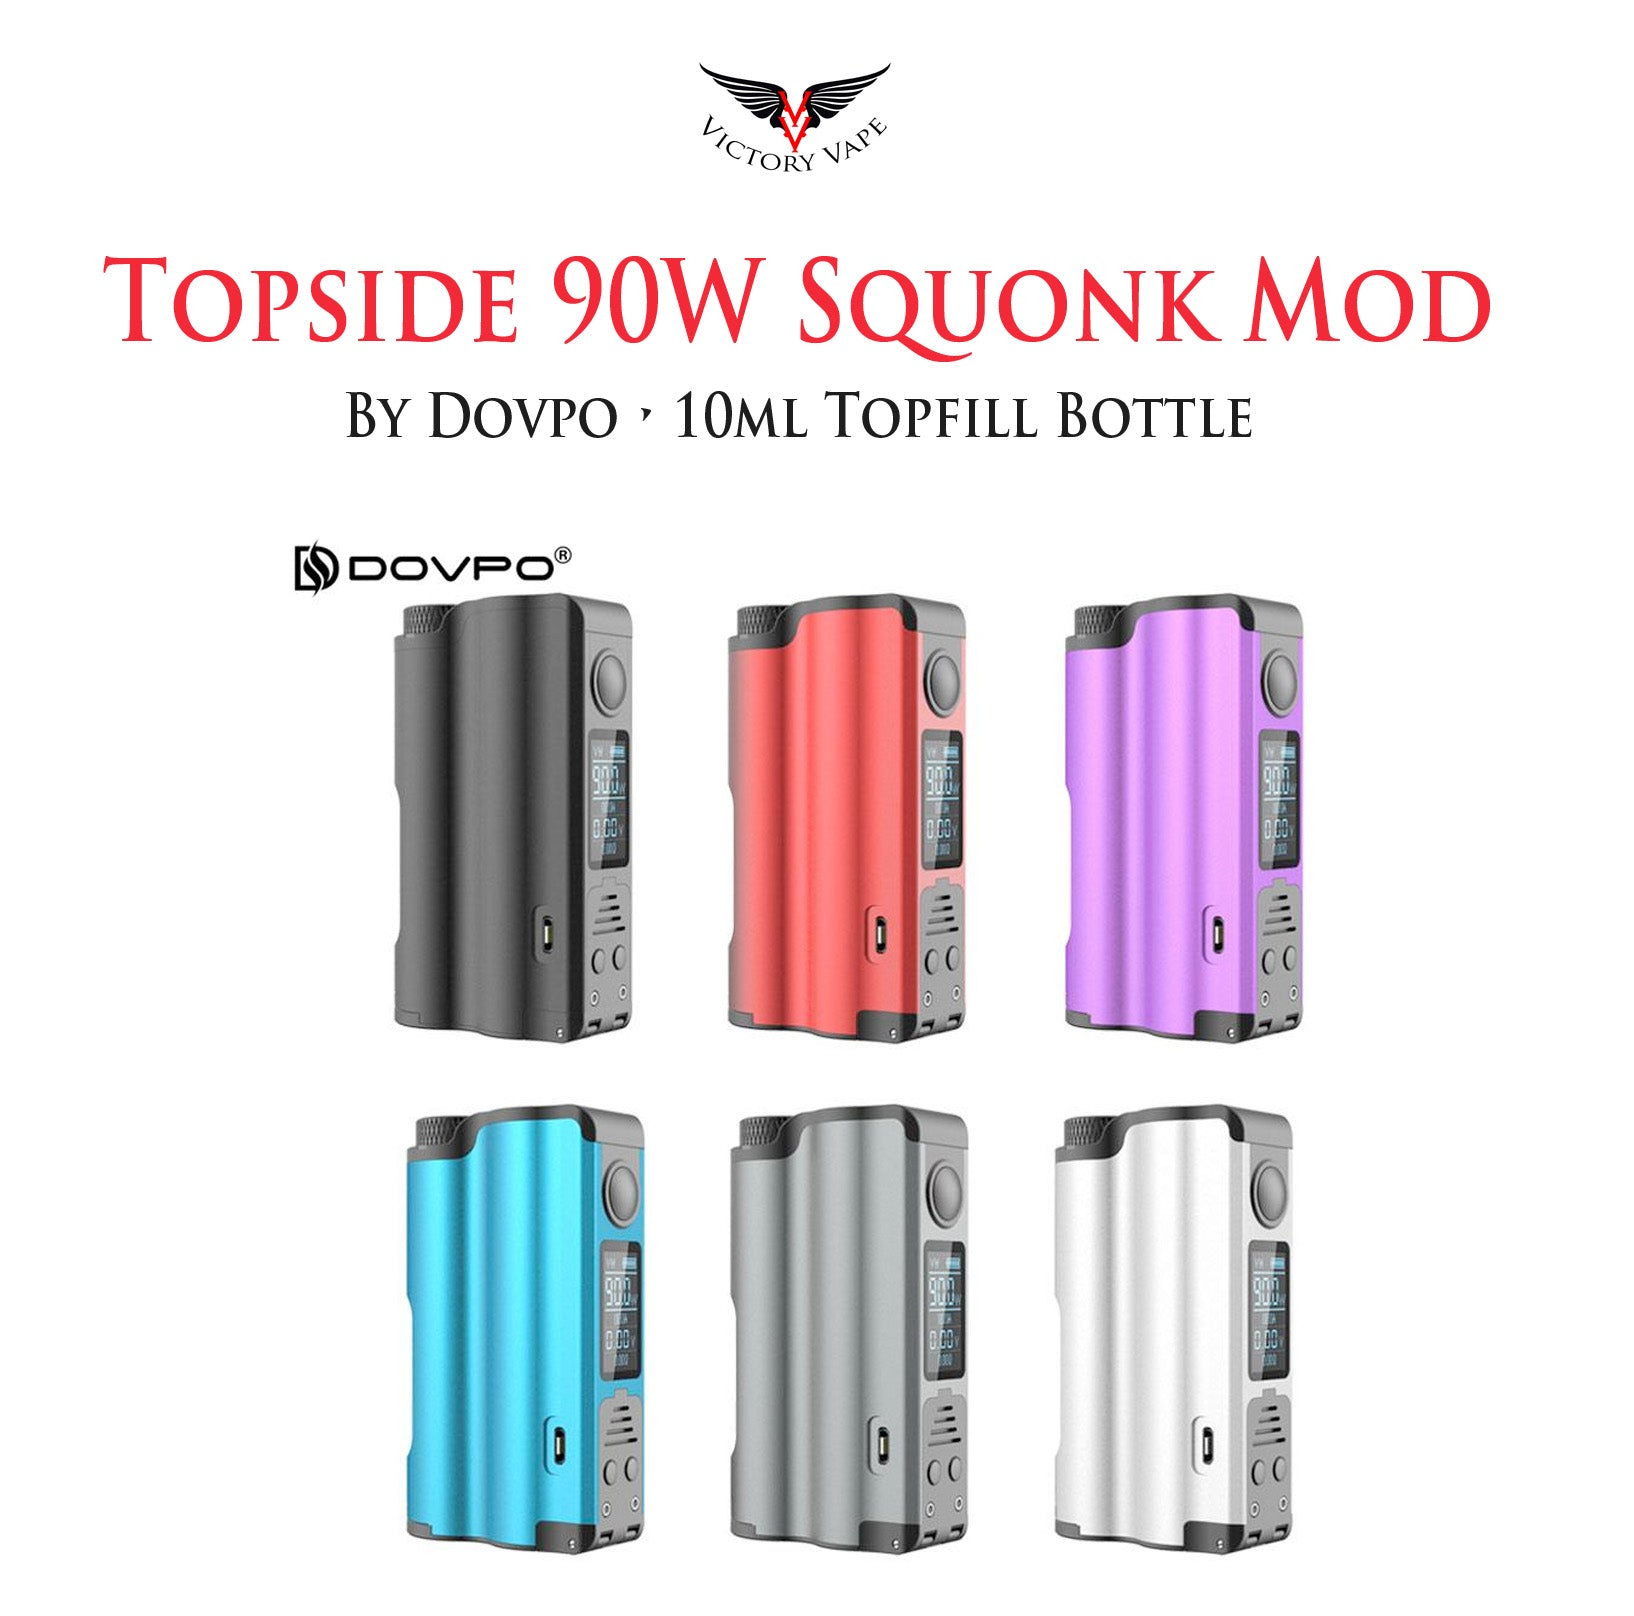 Dovpo Topside 90W Top Fill 10ml Squonk Mod